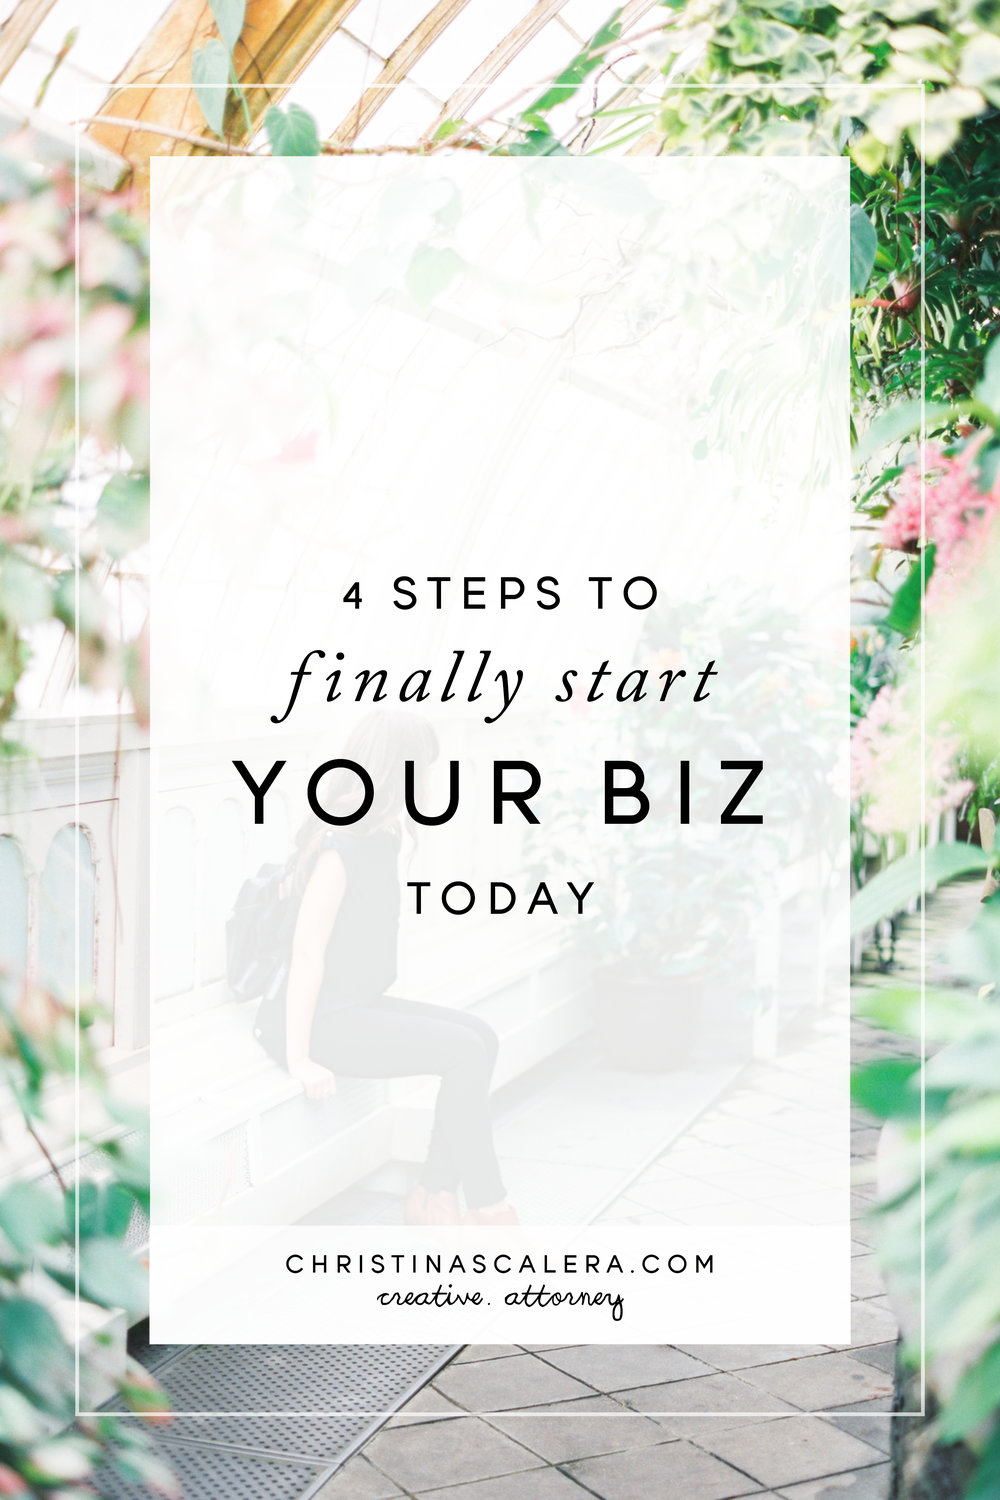 the no bull way to build a unicorn business, 4 steps to finally start your biz today!